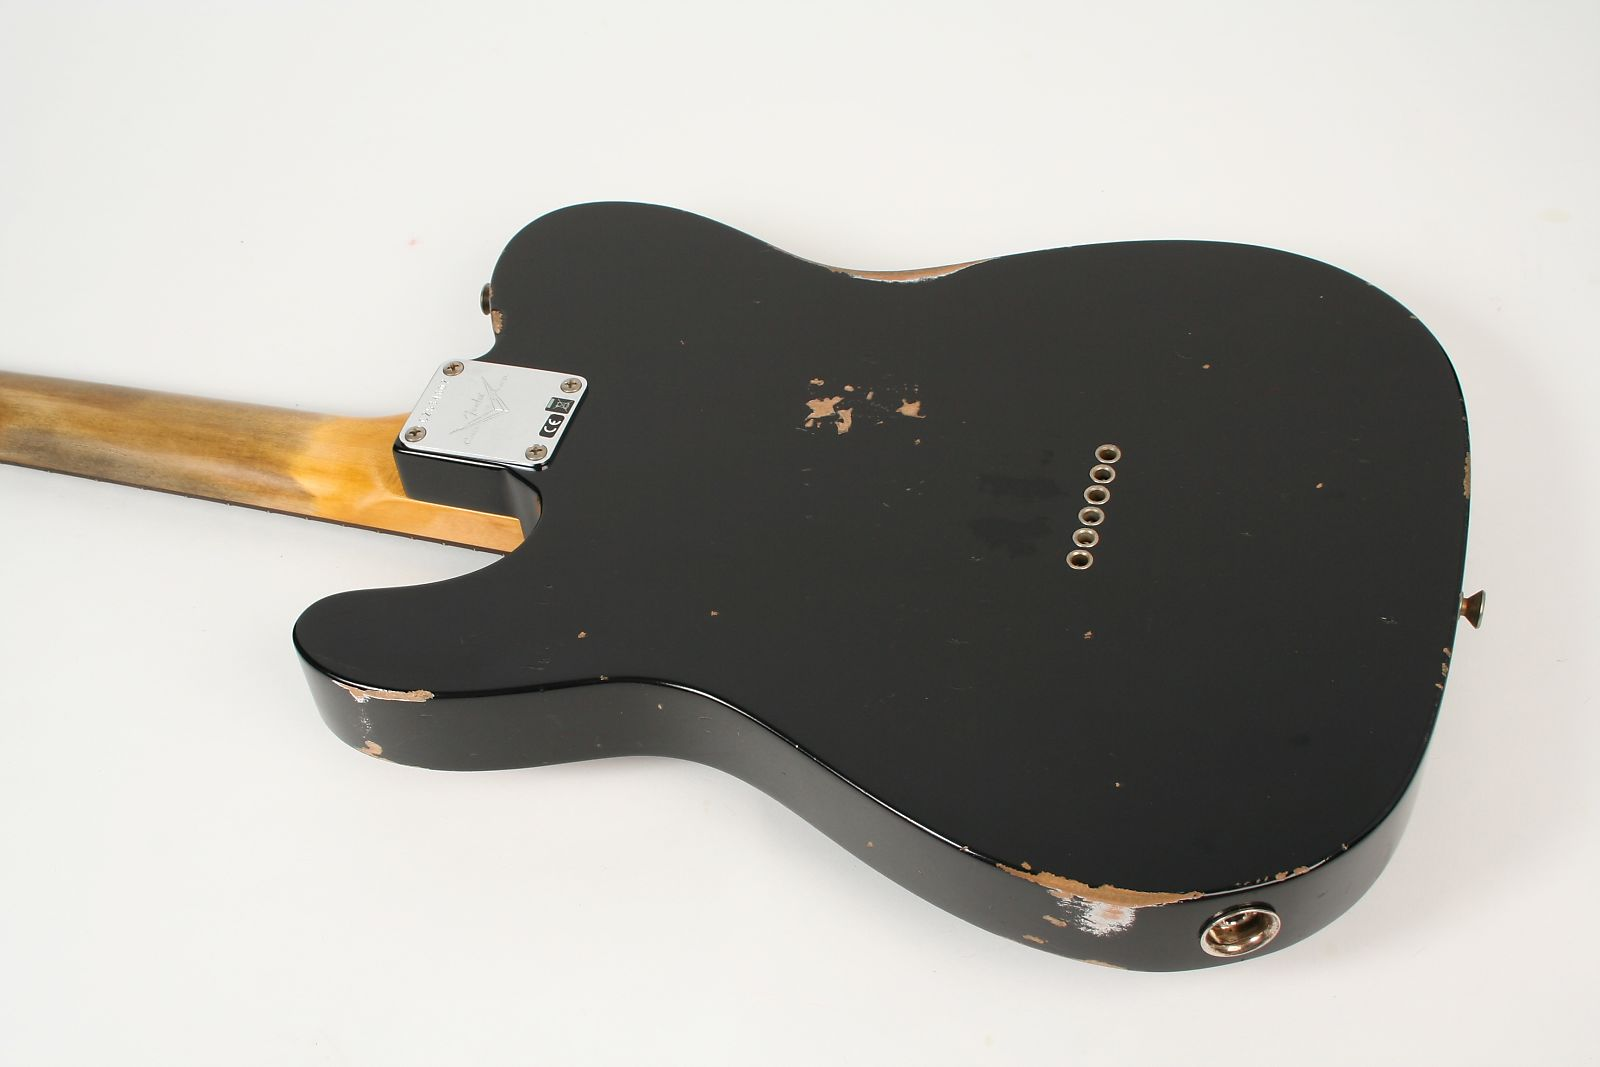 Fender Custom Shop 1961 Relic Telecaster New Black Authorized Dealer Sale On Texas Special Pickups Wiring 3650